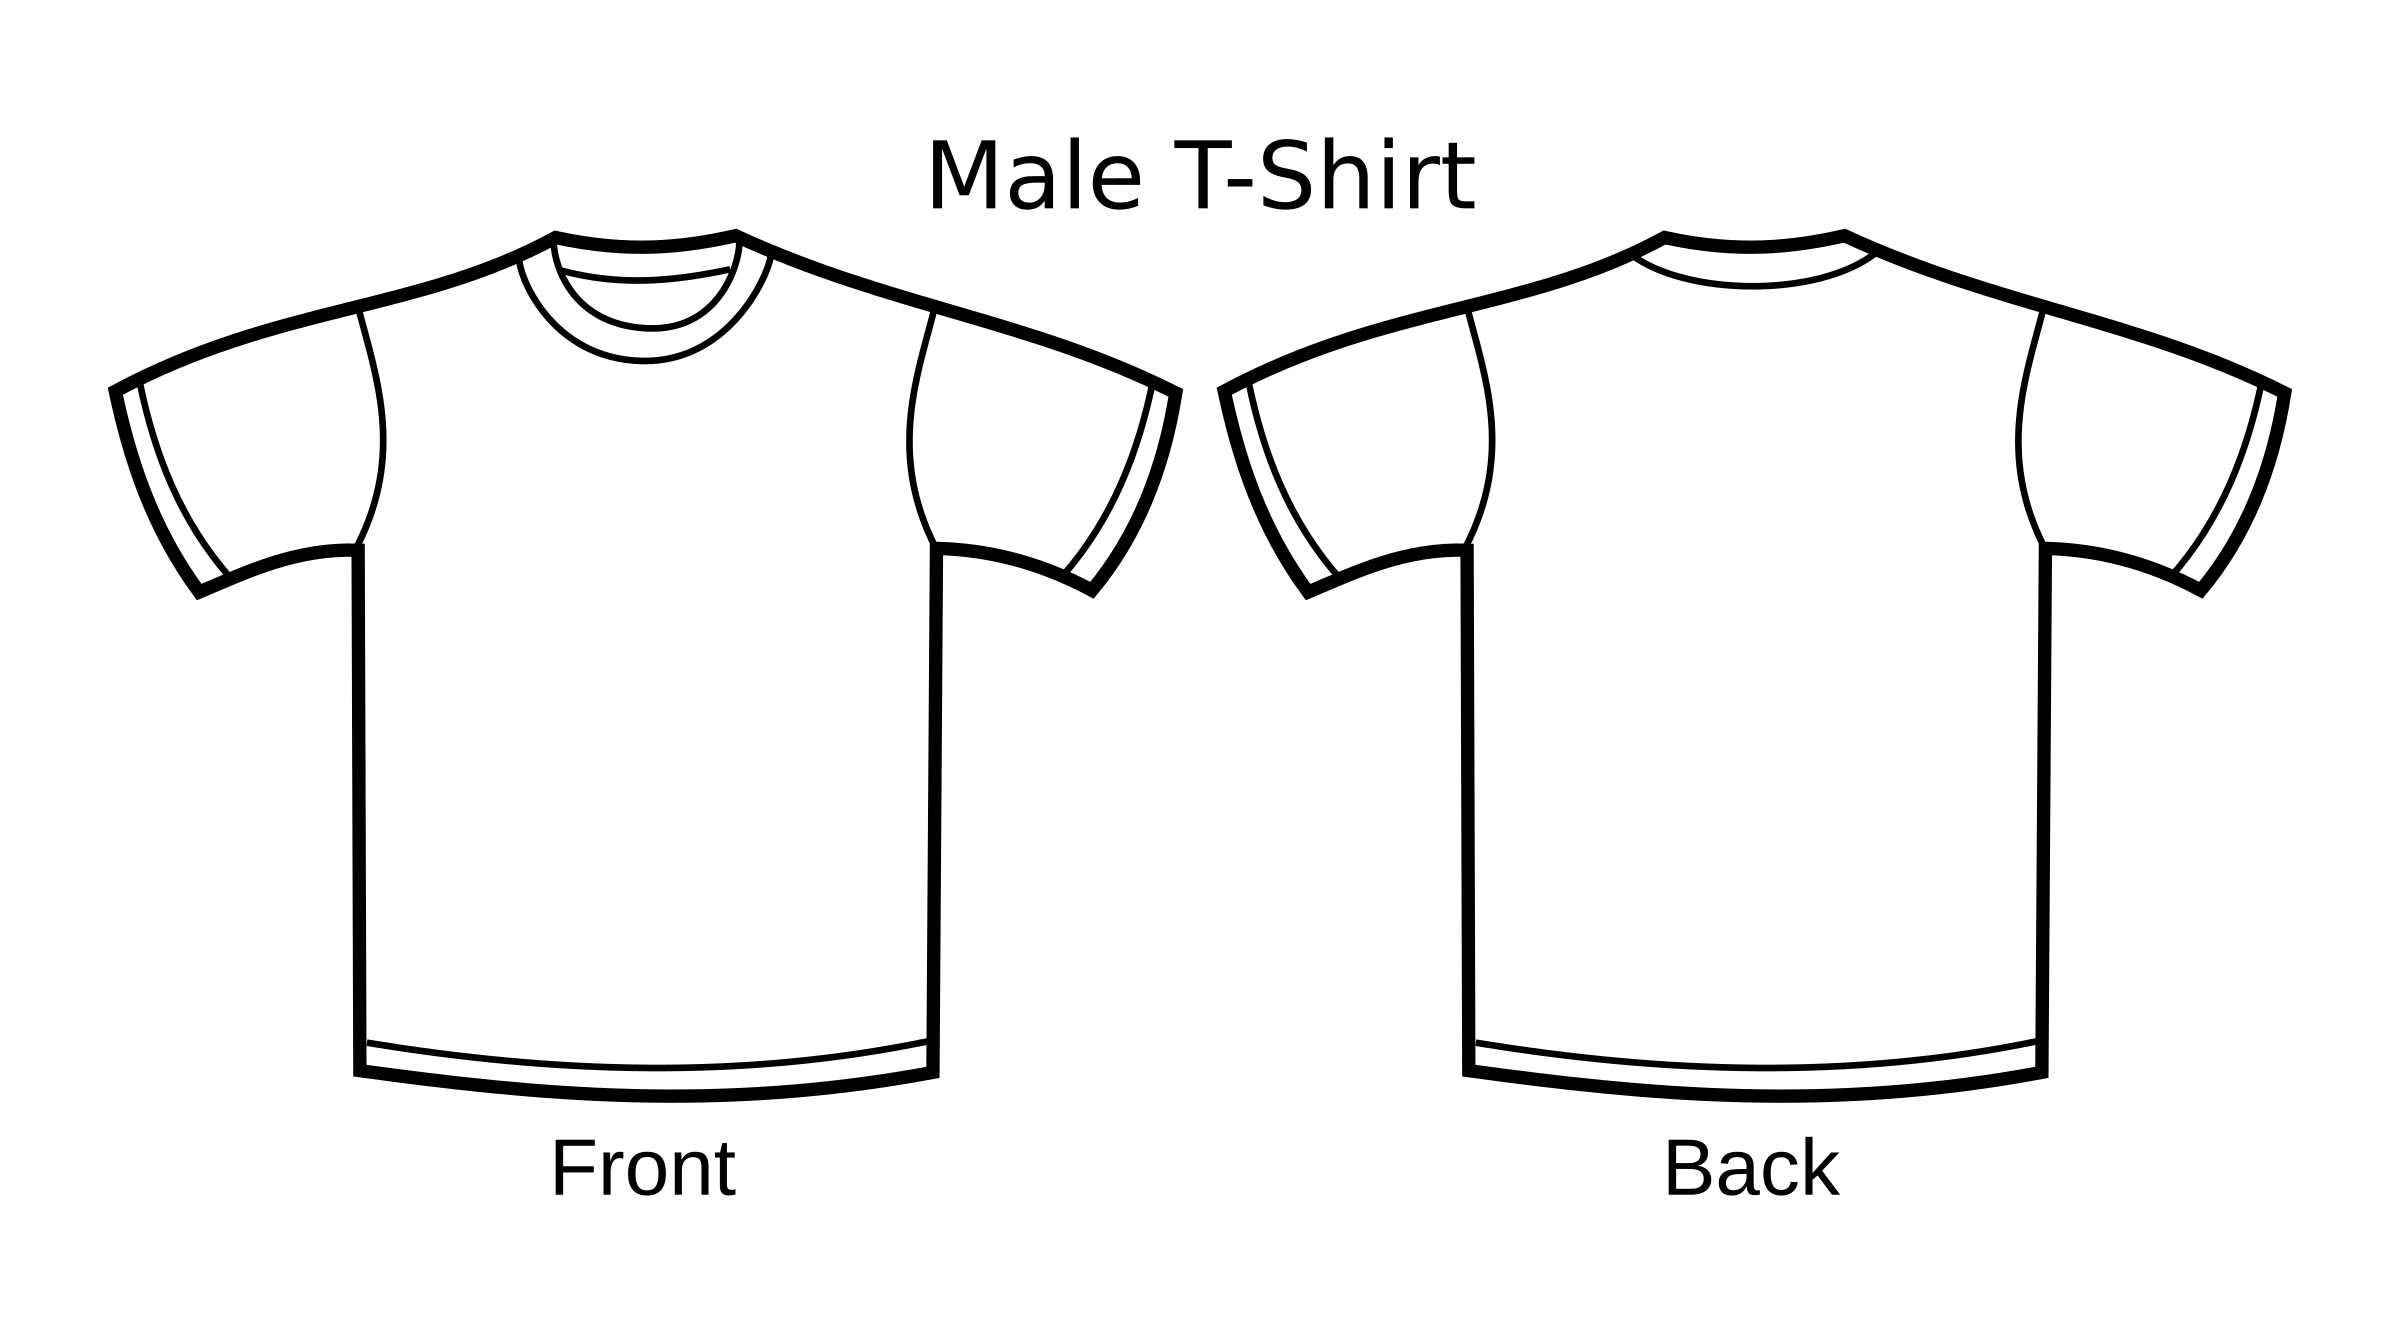 TShirt Template by nicubunu